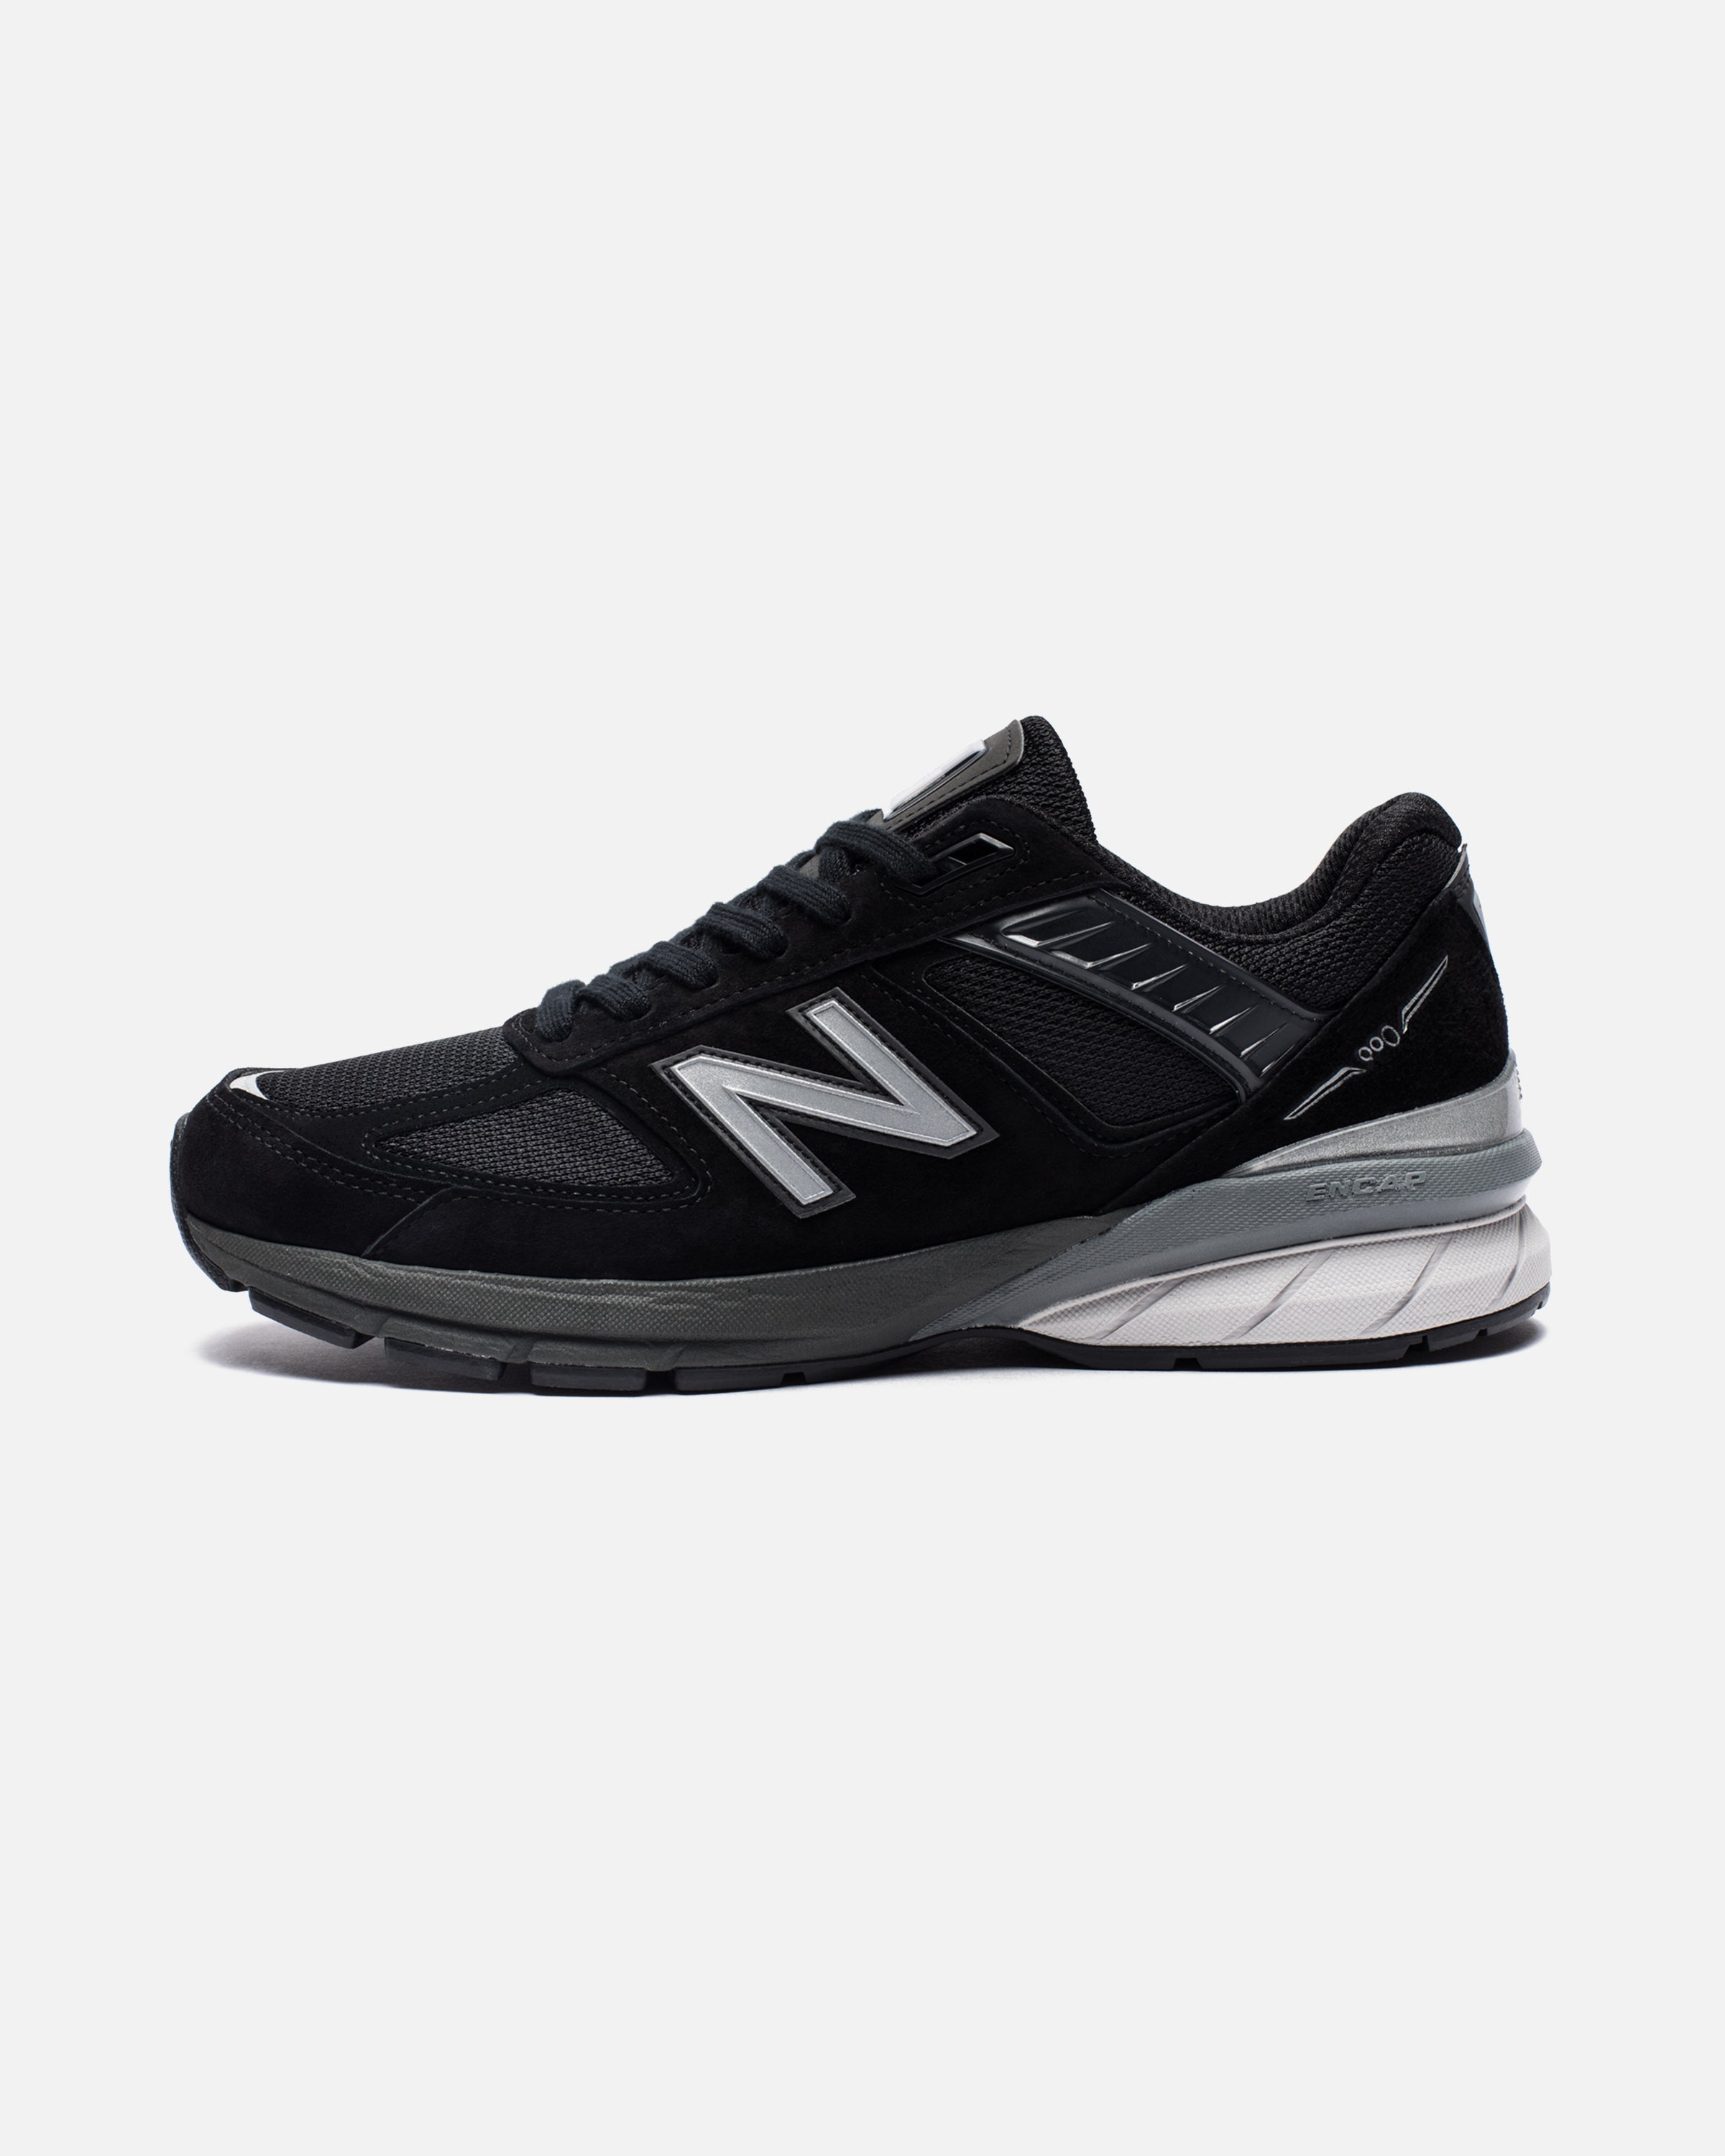 MADE IN AMERICA 990 - BLACK/SILVER